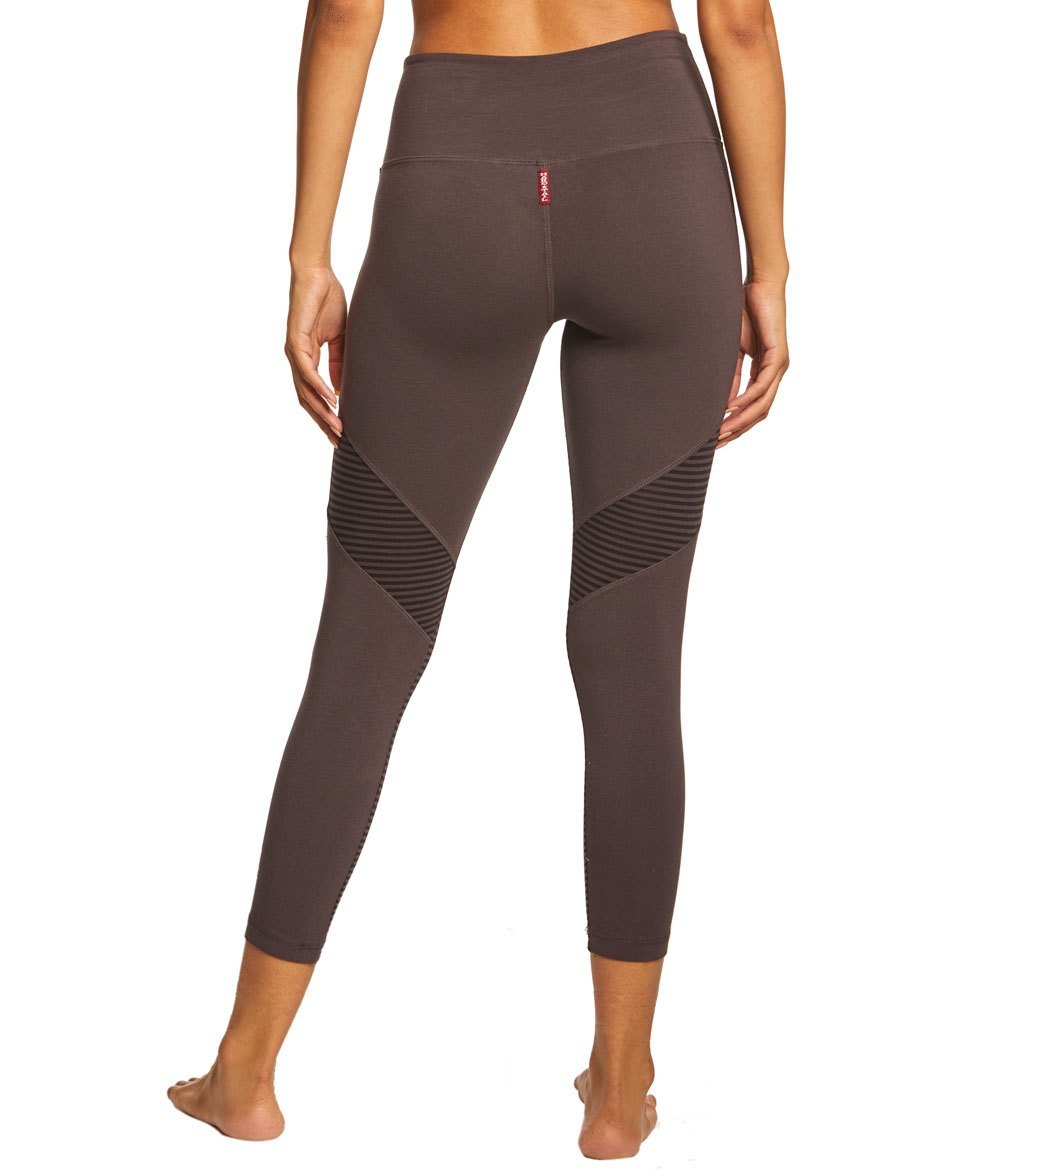 0b0d975231a2b Hard Tail High Waist Tonal Back Capris at YogaOutlet.com - Free Shipping